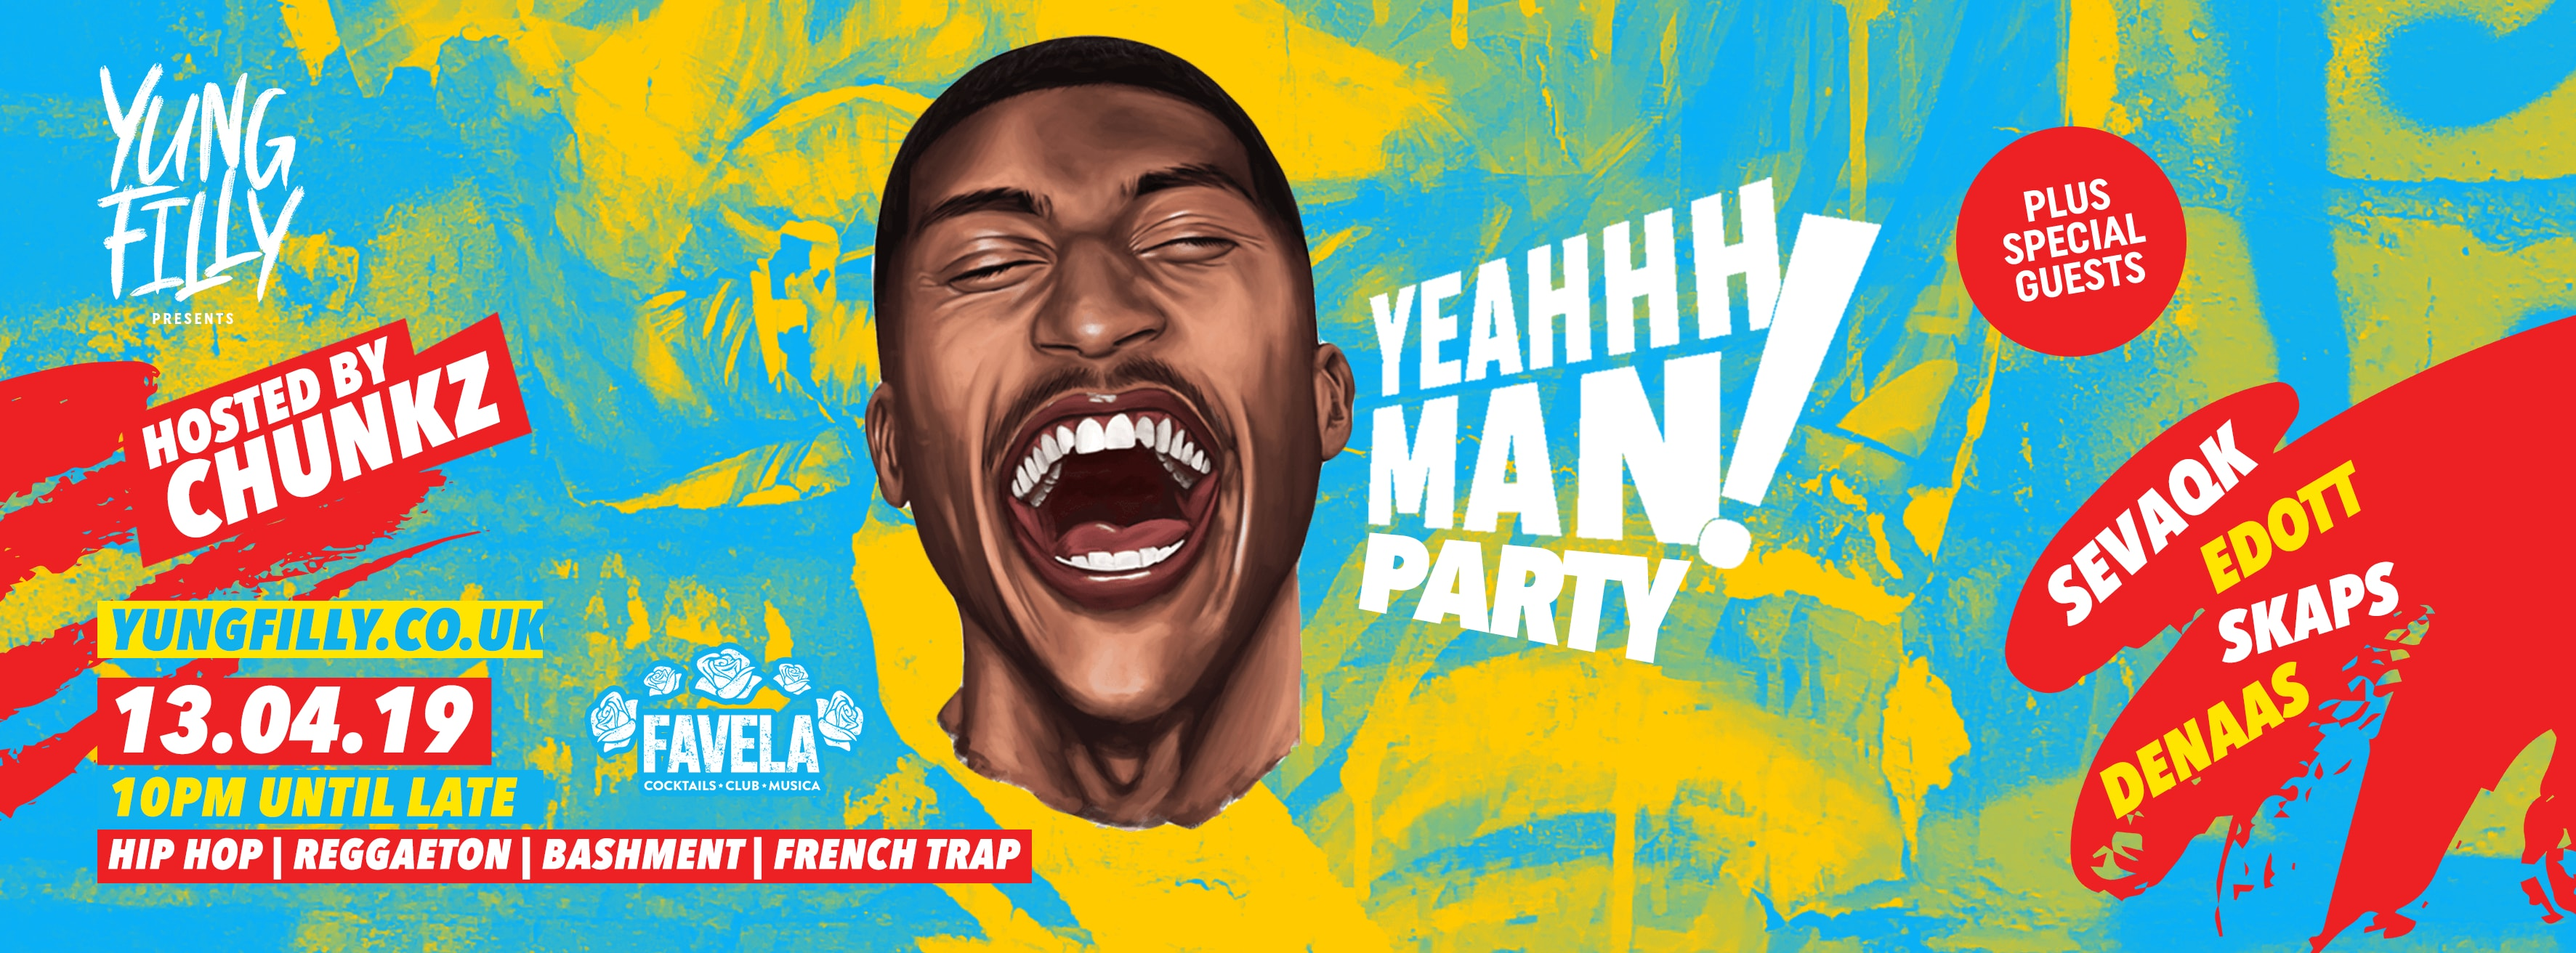 Yung Filly Presents: YeahhhMan Party – TICKETS OUT NOW!! Hosted by Chunkz + Special Guests